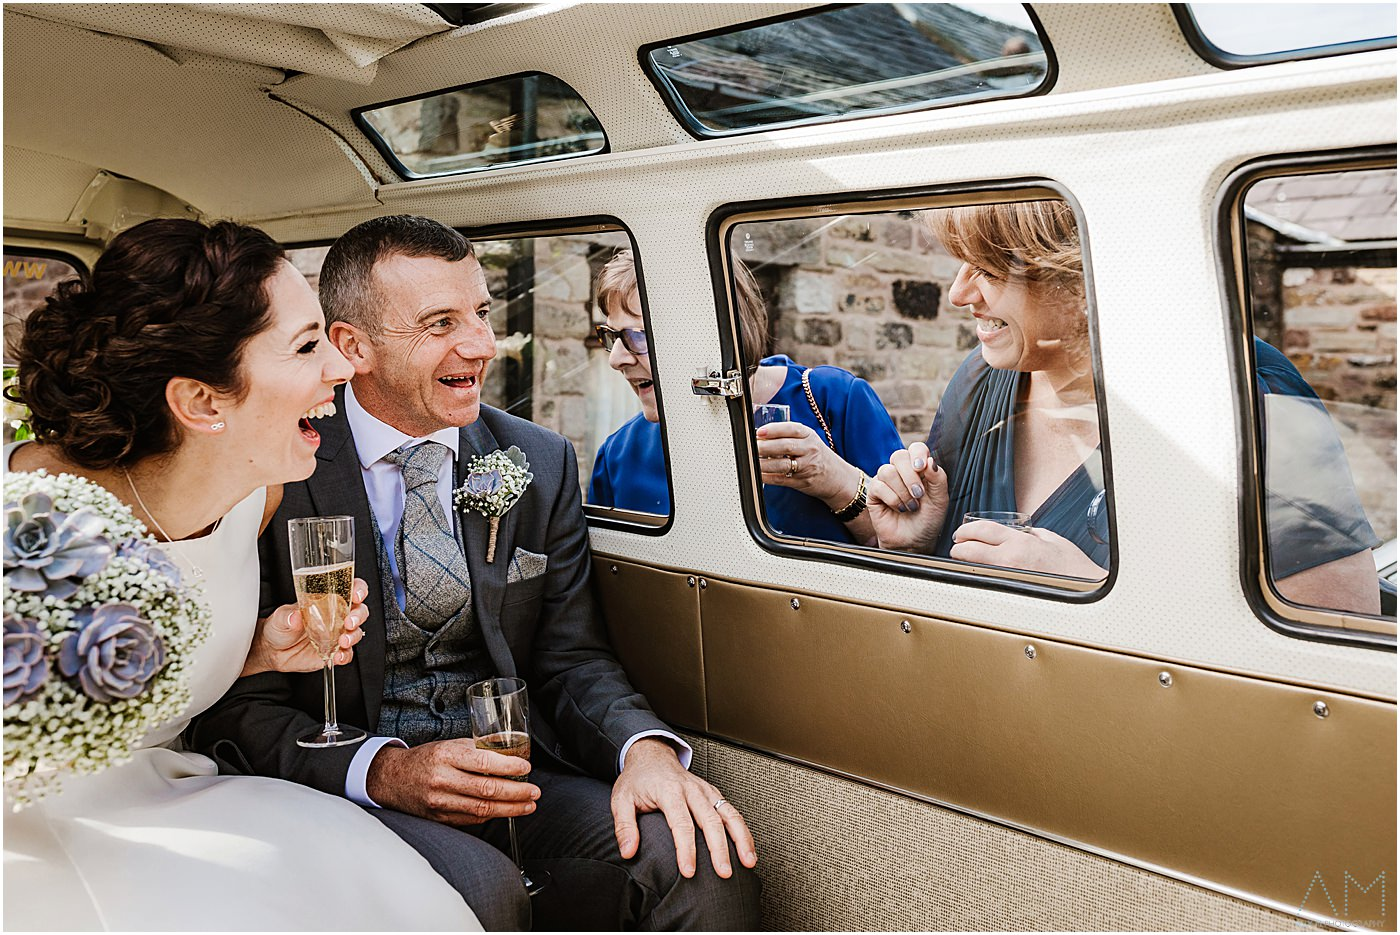 Bride and groom in camper van